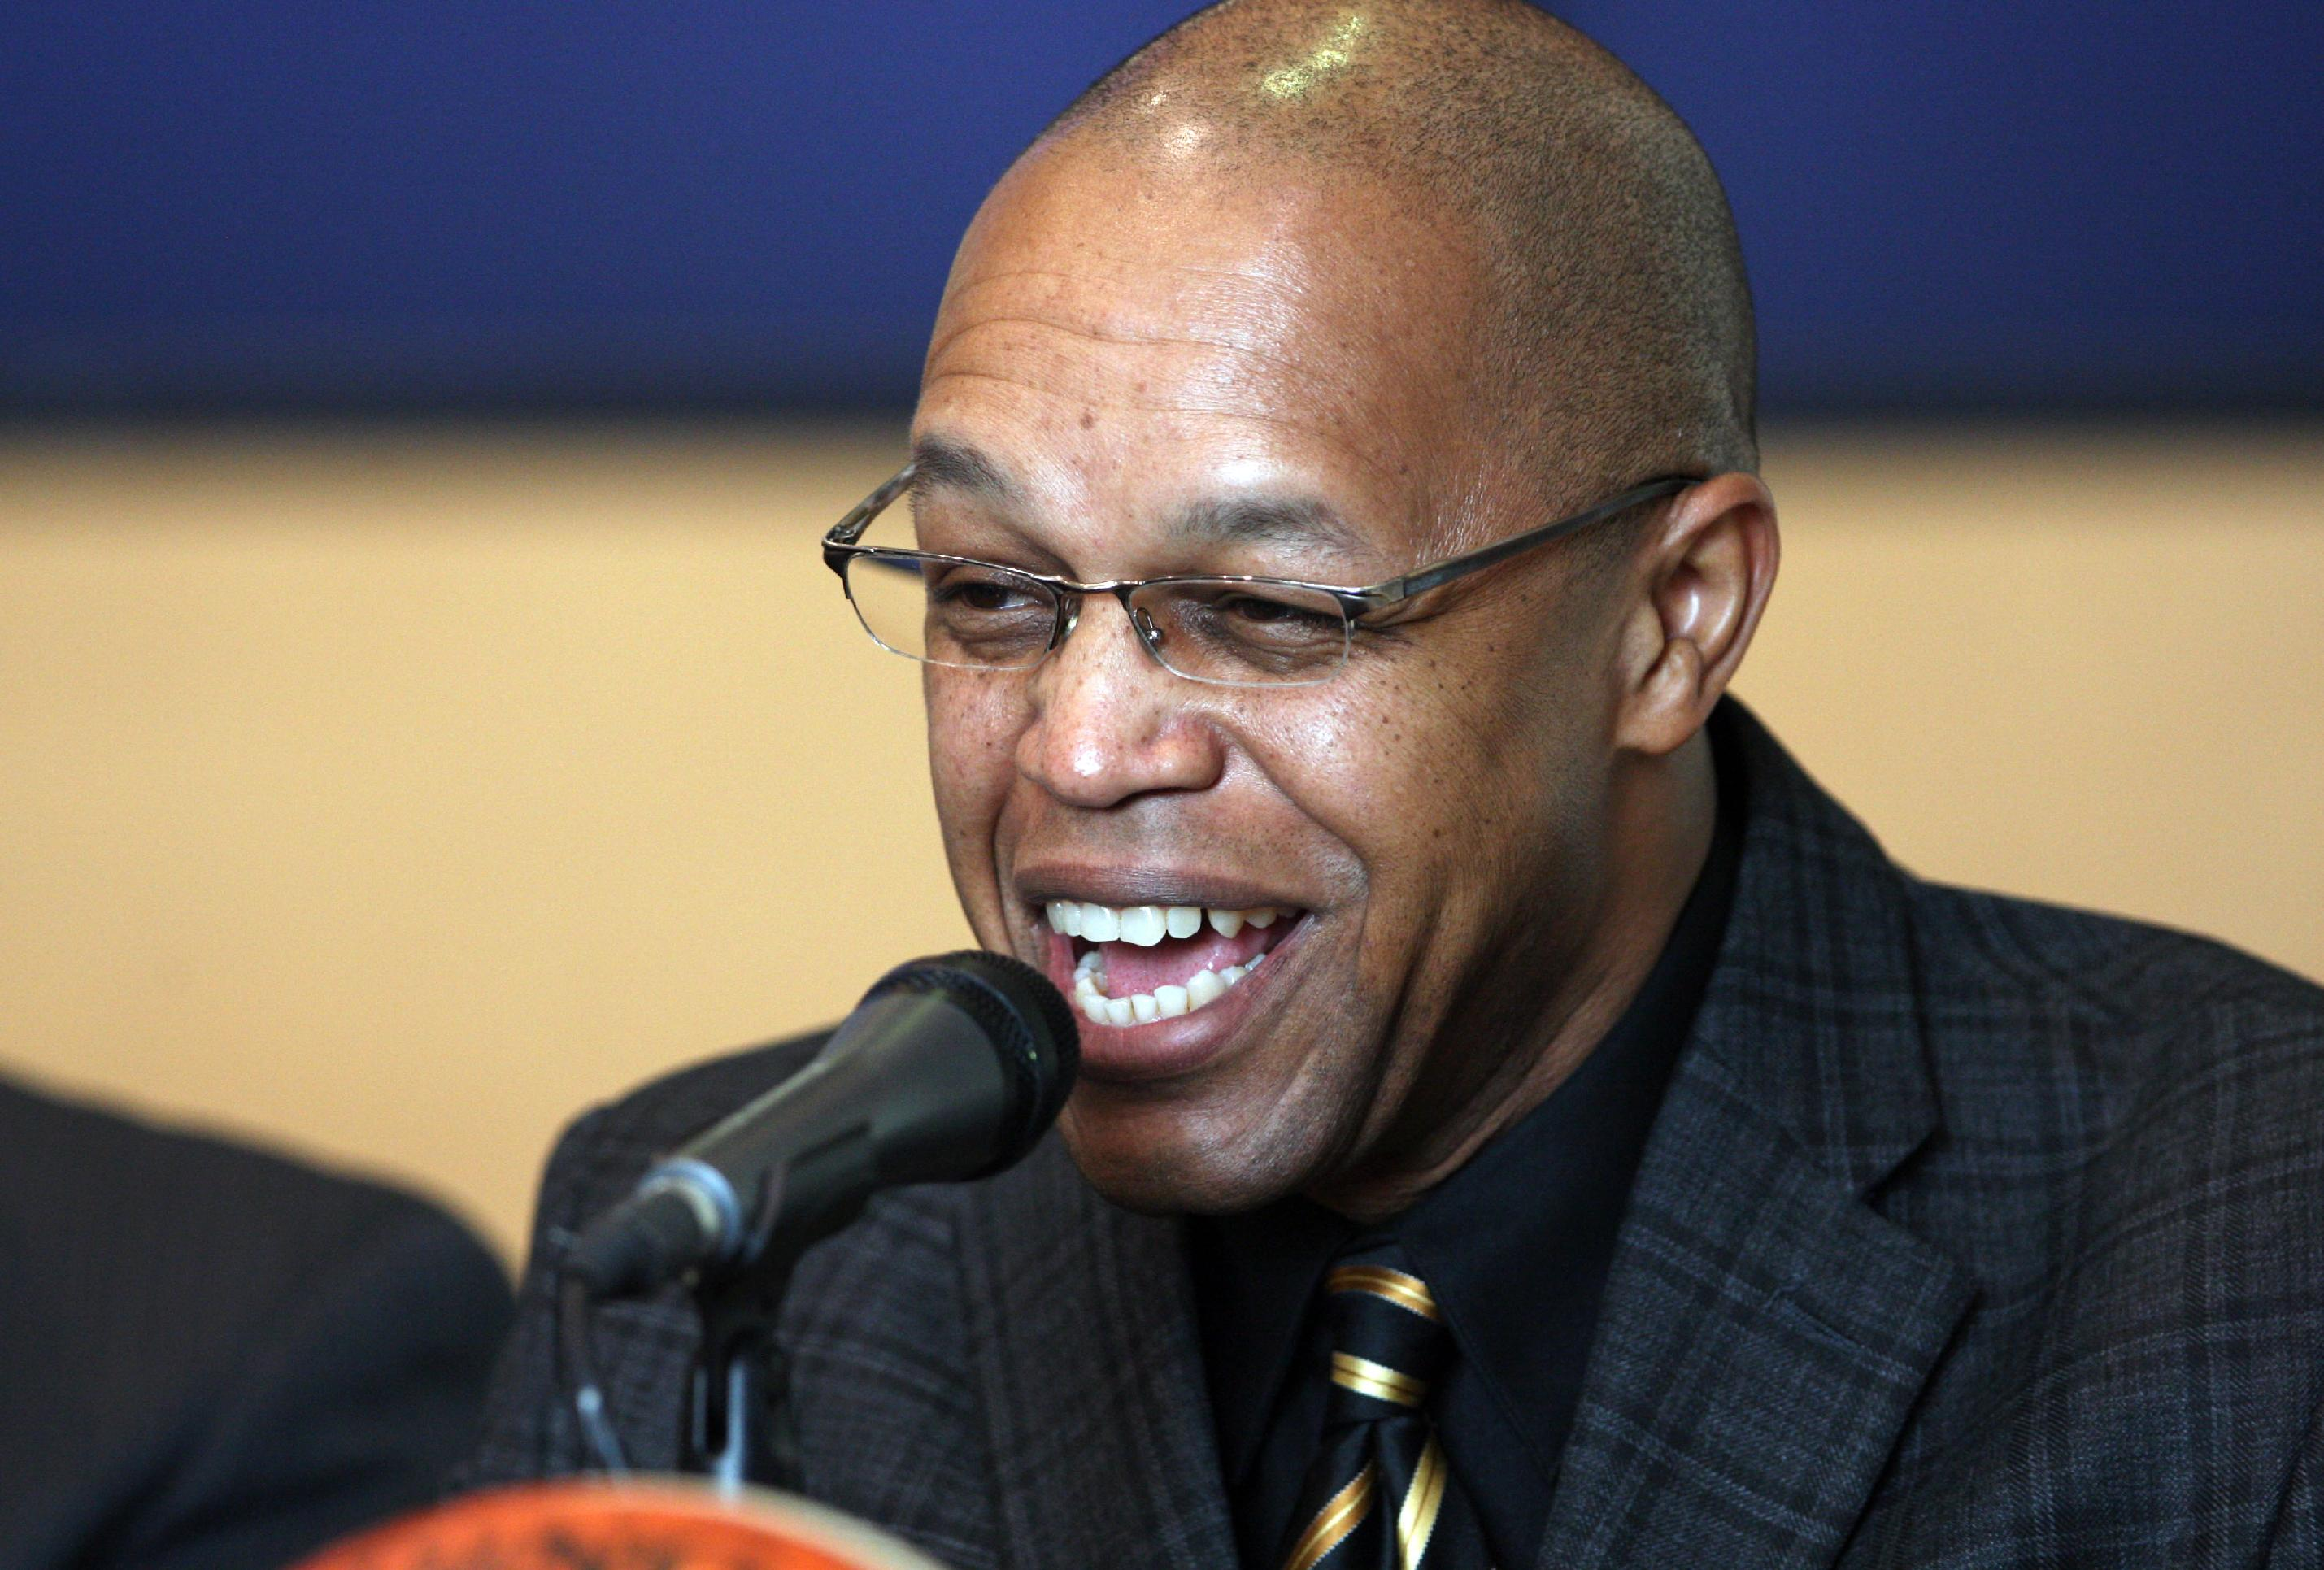 Fred Williams smiles as he is announced as coach of the Tulsa Shock WNBA basketball team, during a news conference in Tulsa, Okla., on Thursday, Jan. 23, 2014